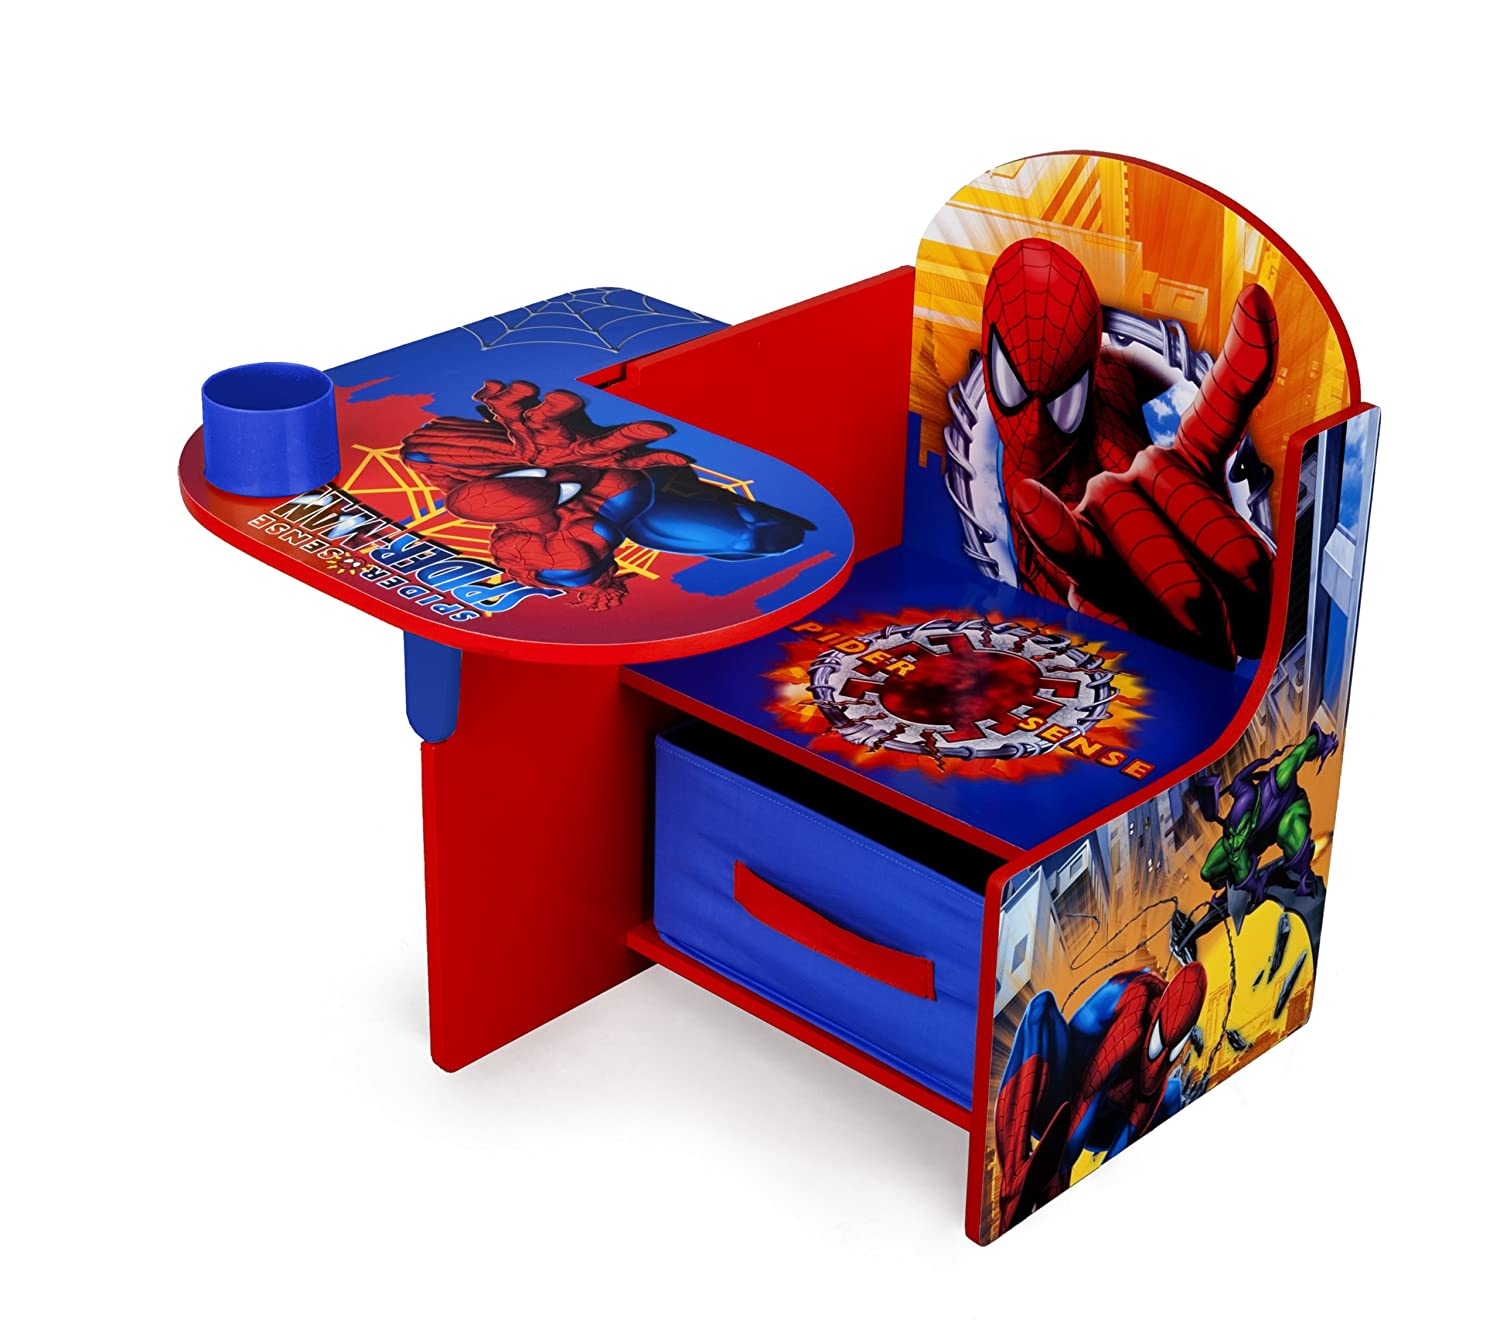 budget engaging home boys dk furniture spiderman childs on bed winsome room blue set a ideas unusual bedroom kids